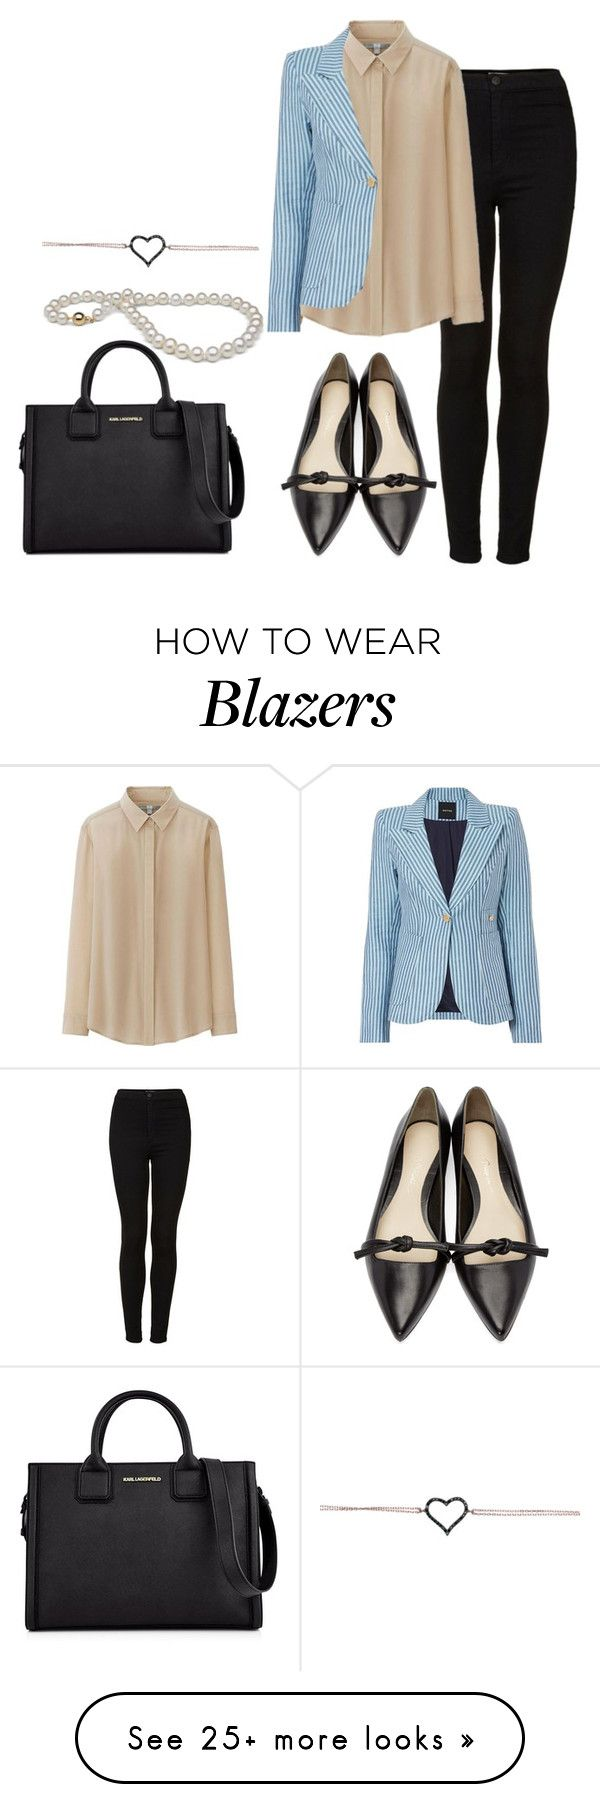 """""""Untitled #926"""" by missrose94 on Polyvore featuring Topshop, Uniqlo, Smythe, 3.1 Phillip Lim, Karl Lagerfeld and topshop"""